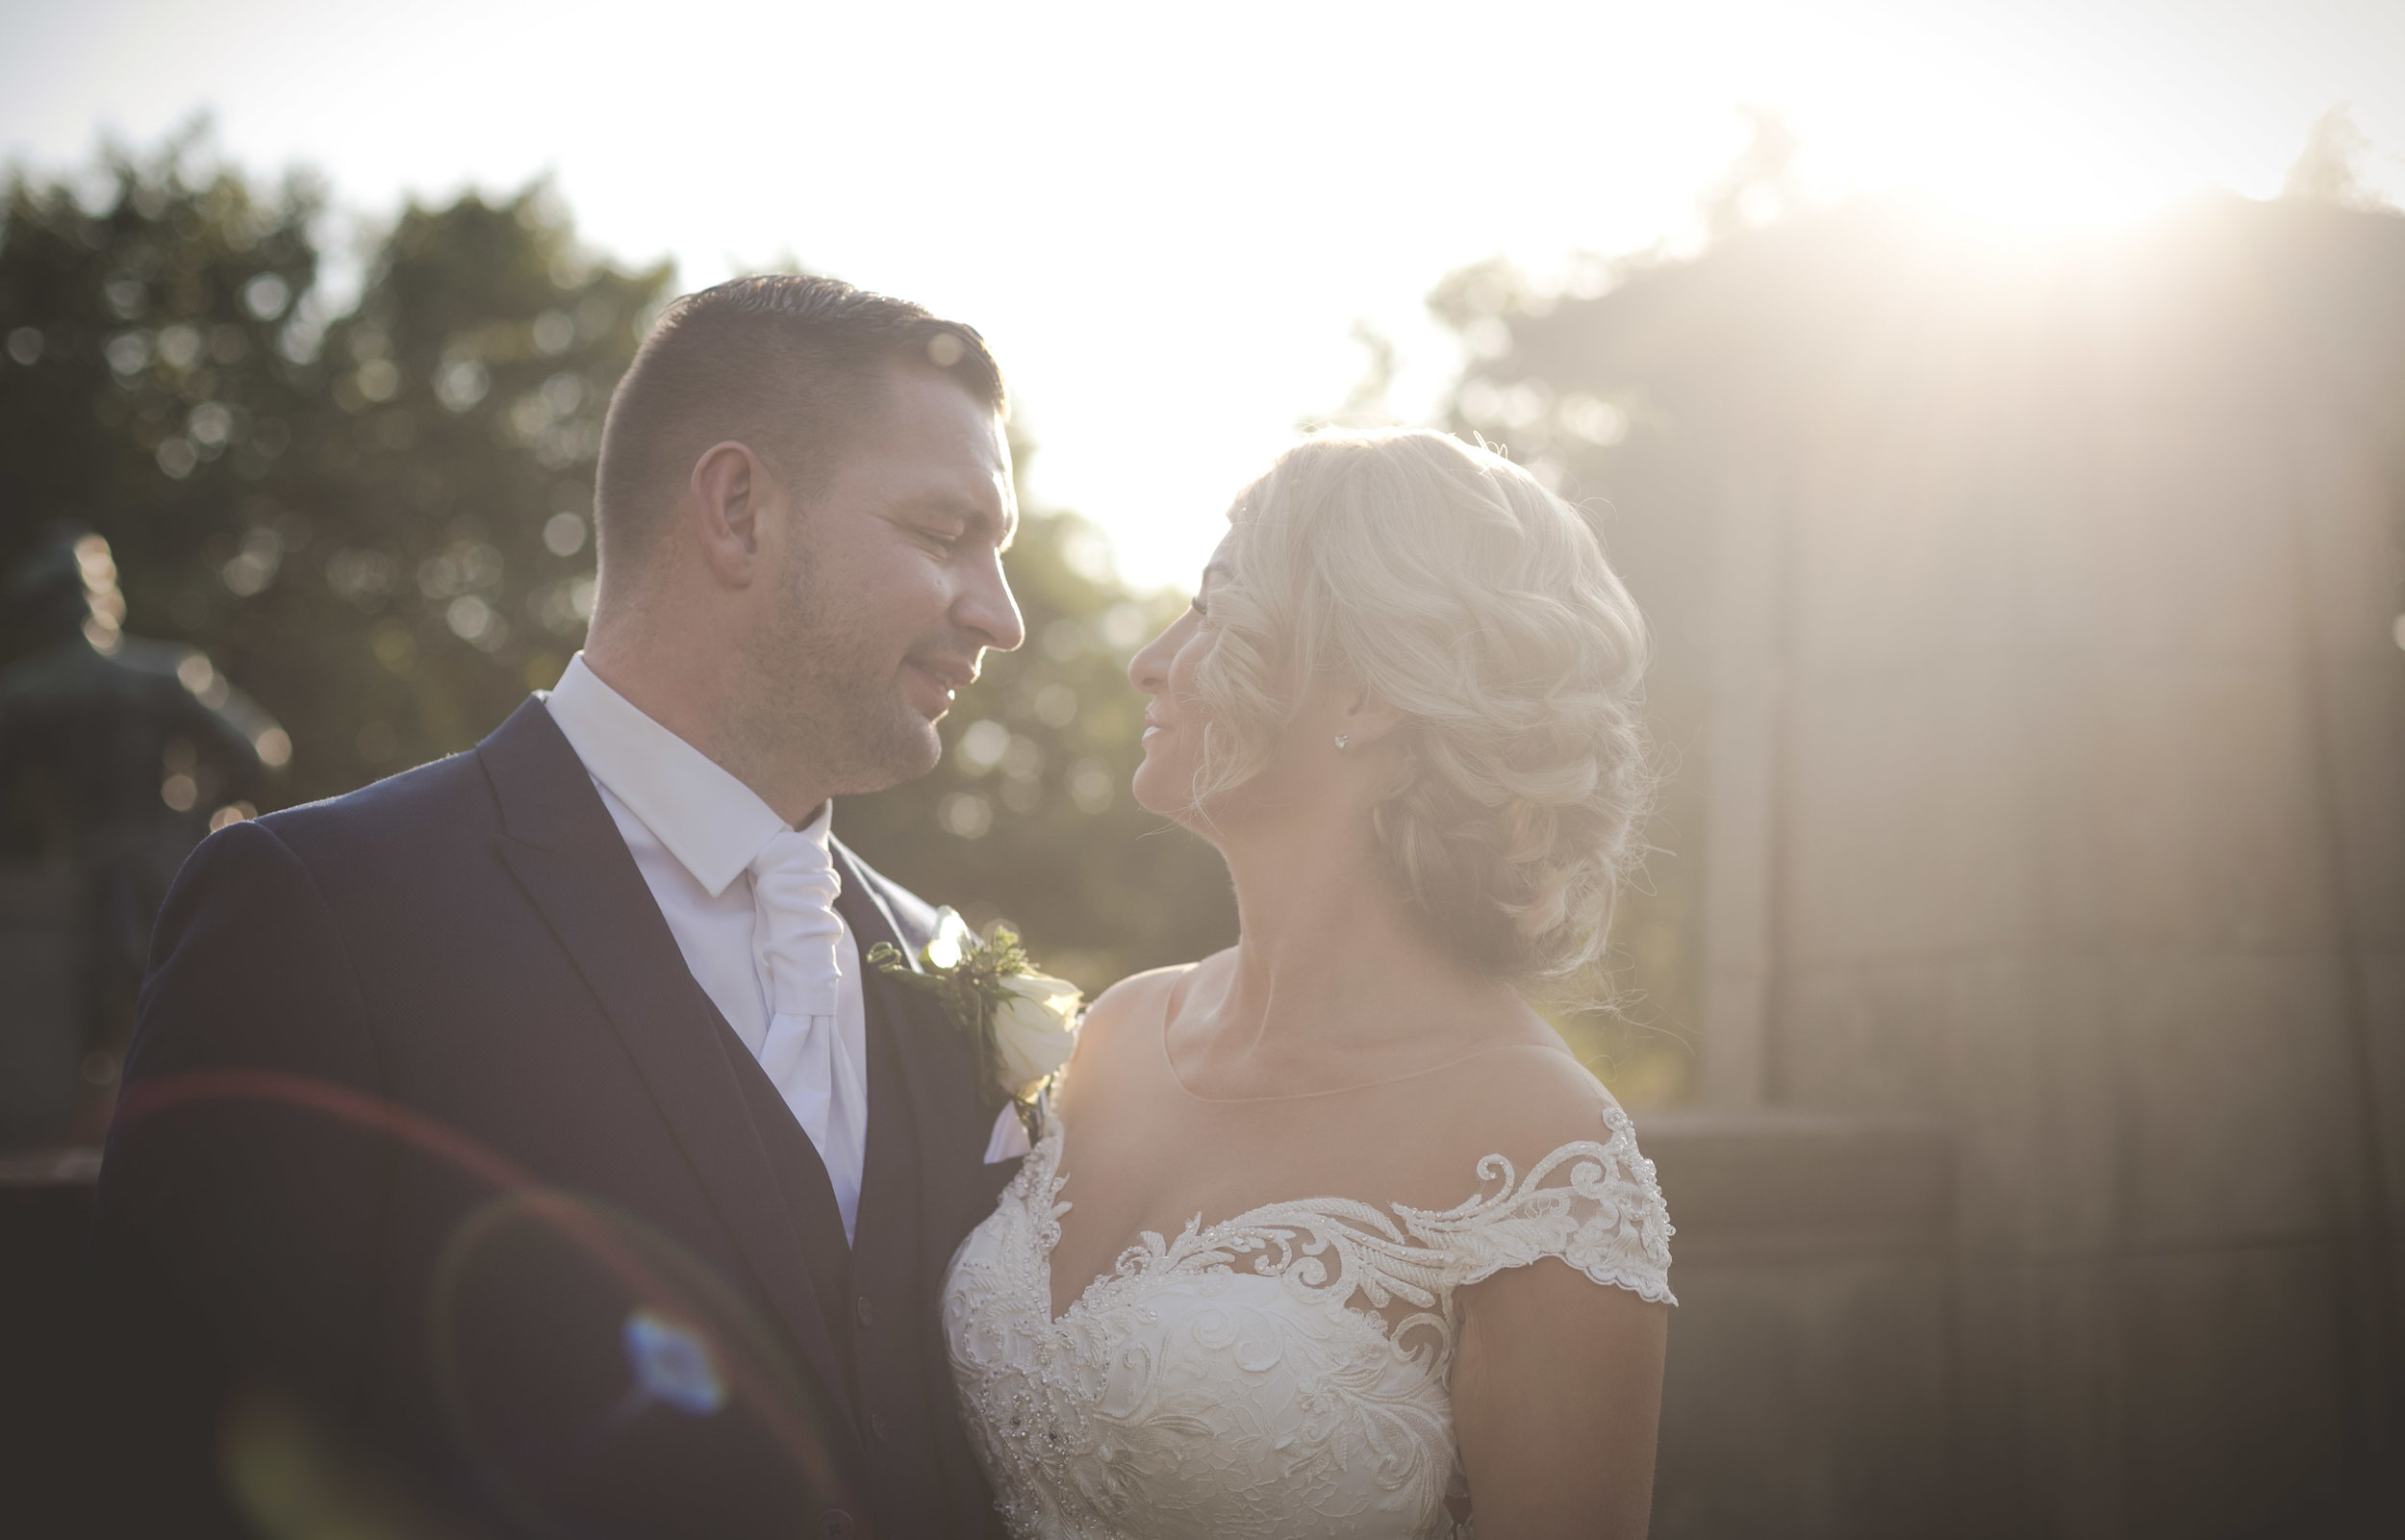 Wedding+photos+at+st+georges (23 of 39).jpg